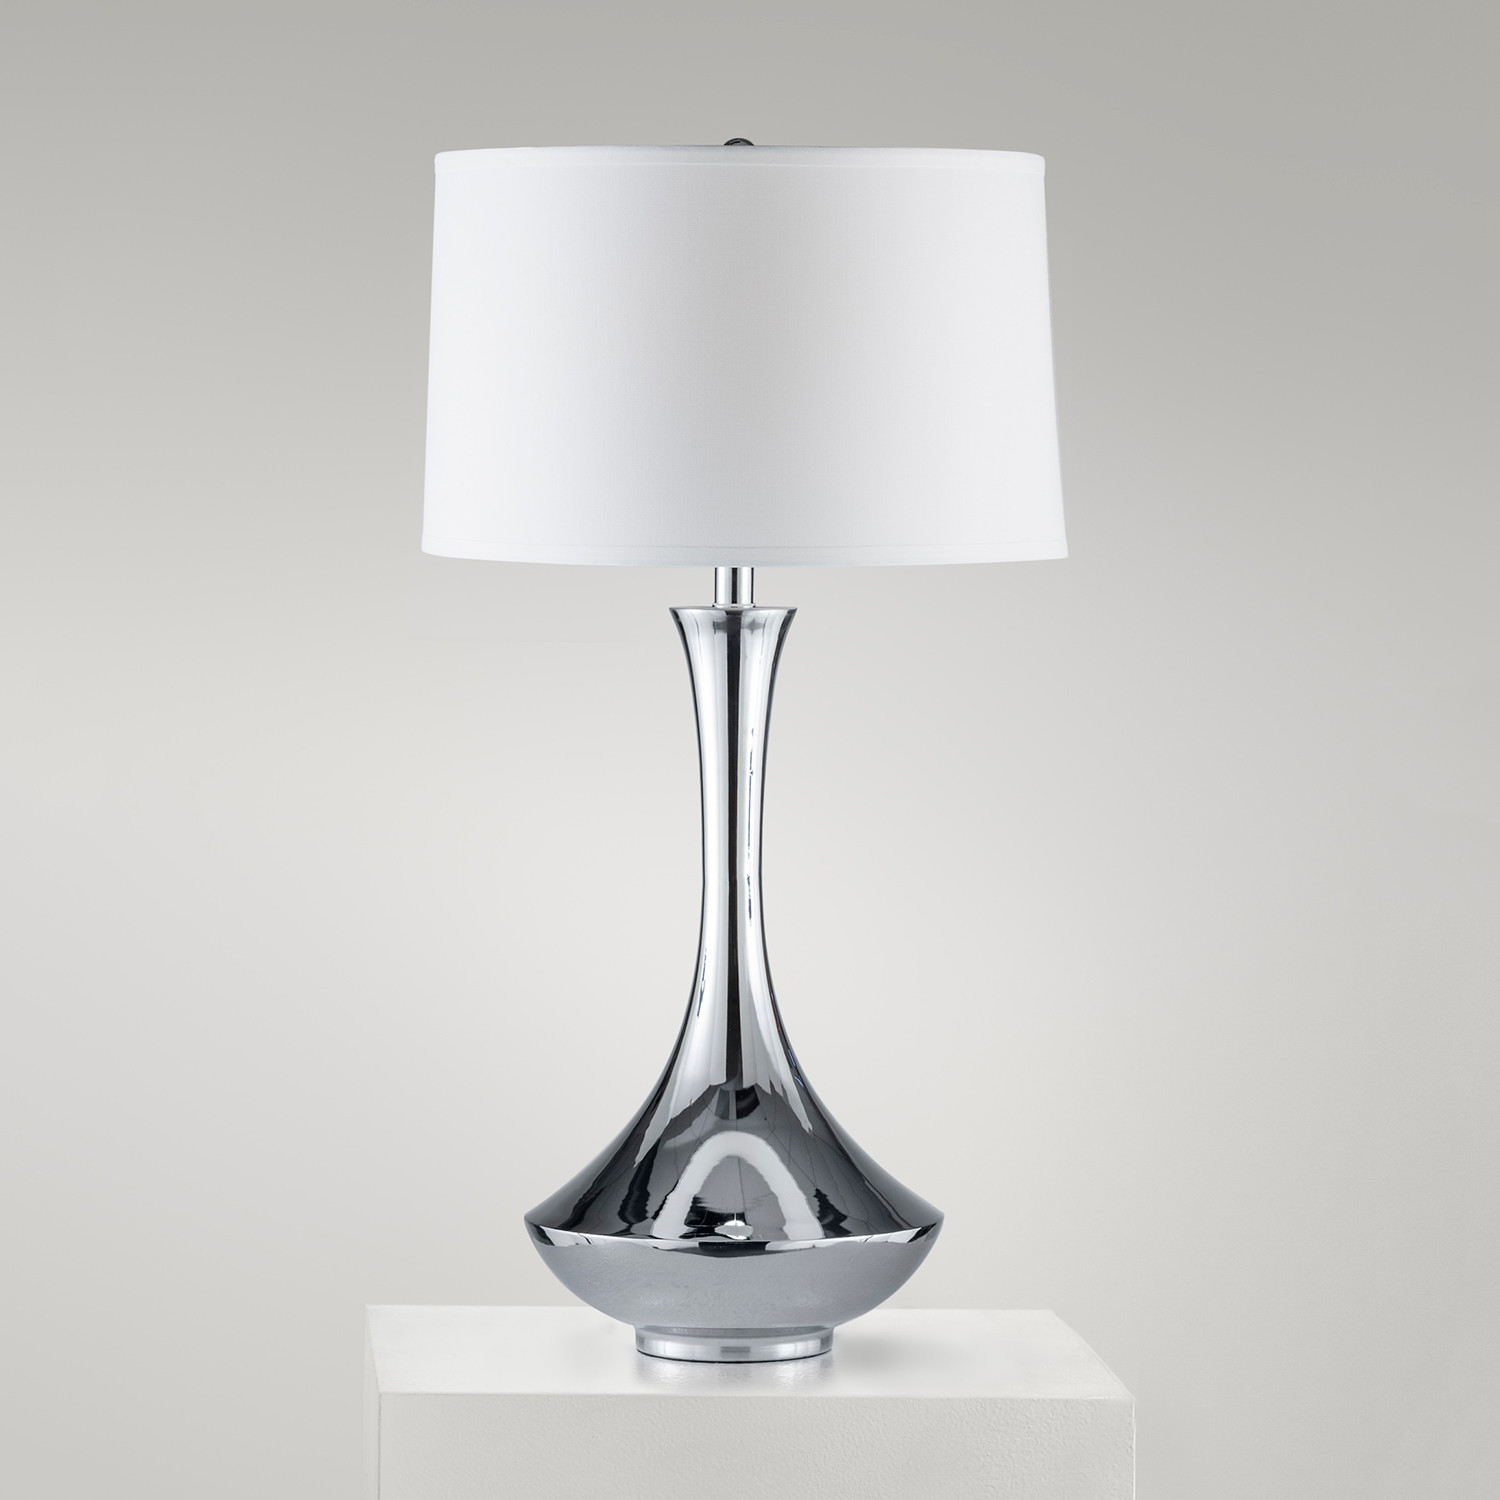 Aladdin table lamp nova lamps touch of modern aladdin table lamp geotapseo Image collections